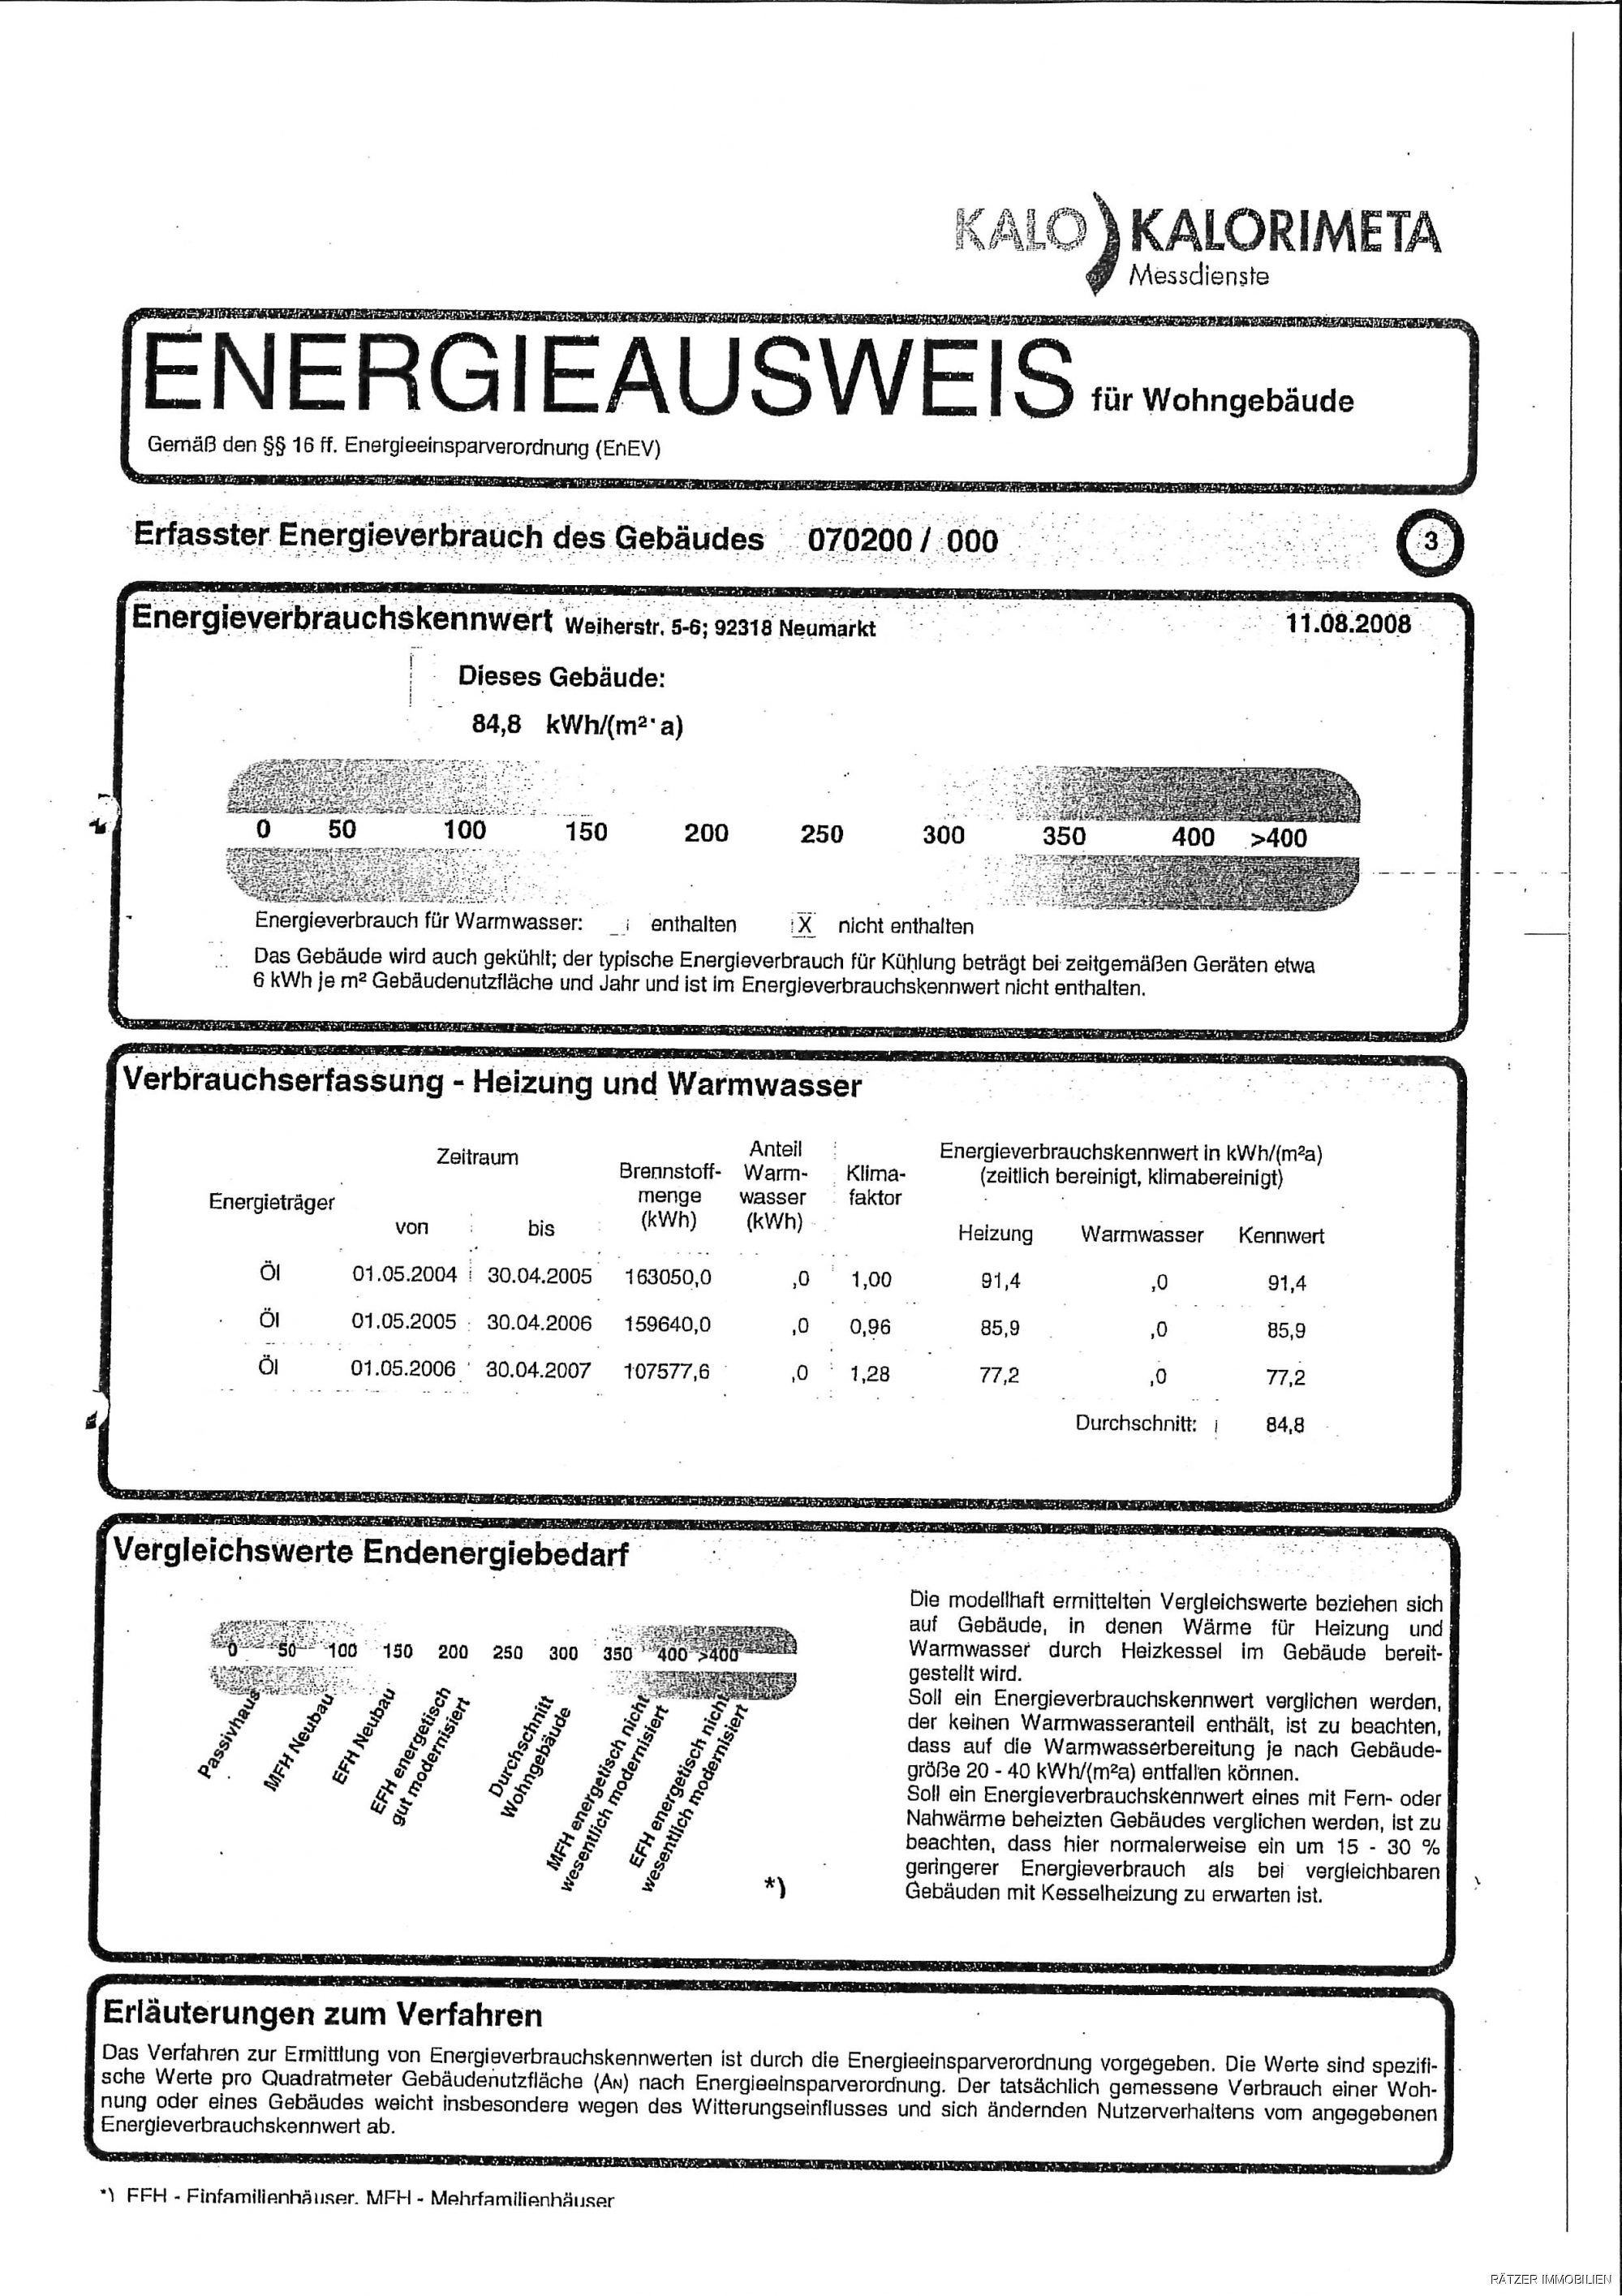 Energieausweis S. 3